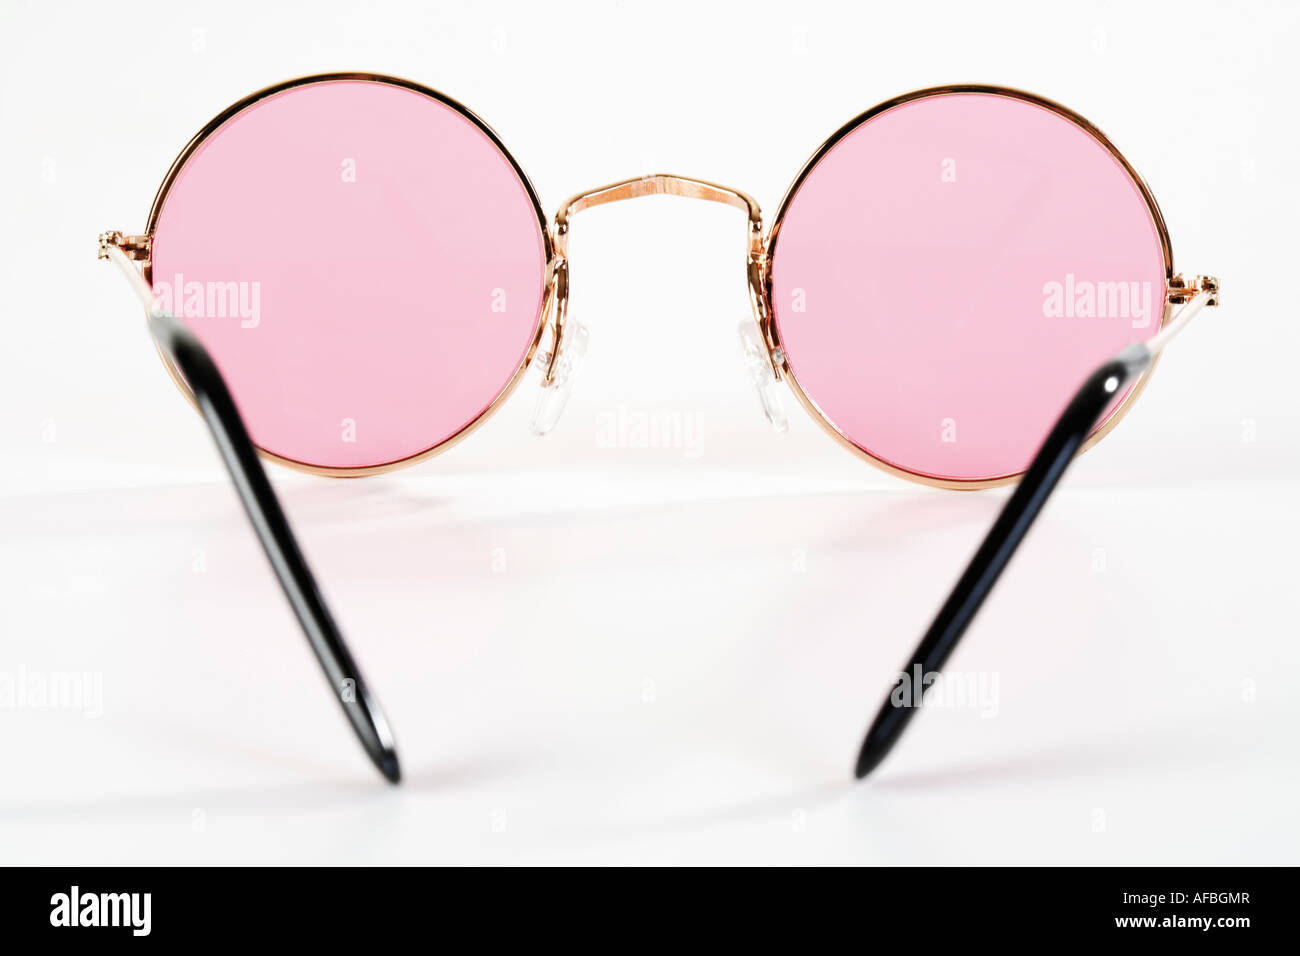 Pink metal-rimmed spectacles, close-up - Stock Image